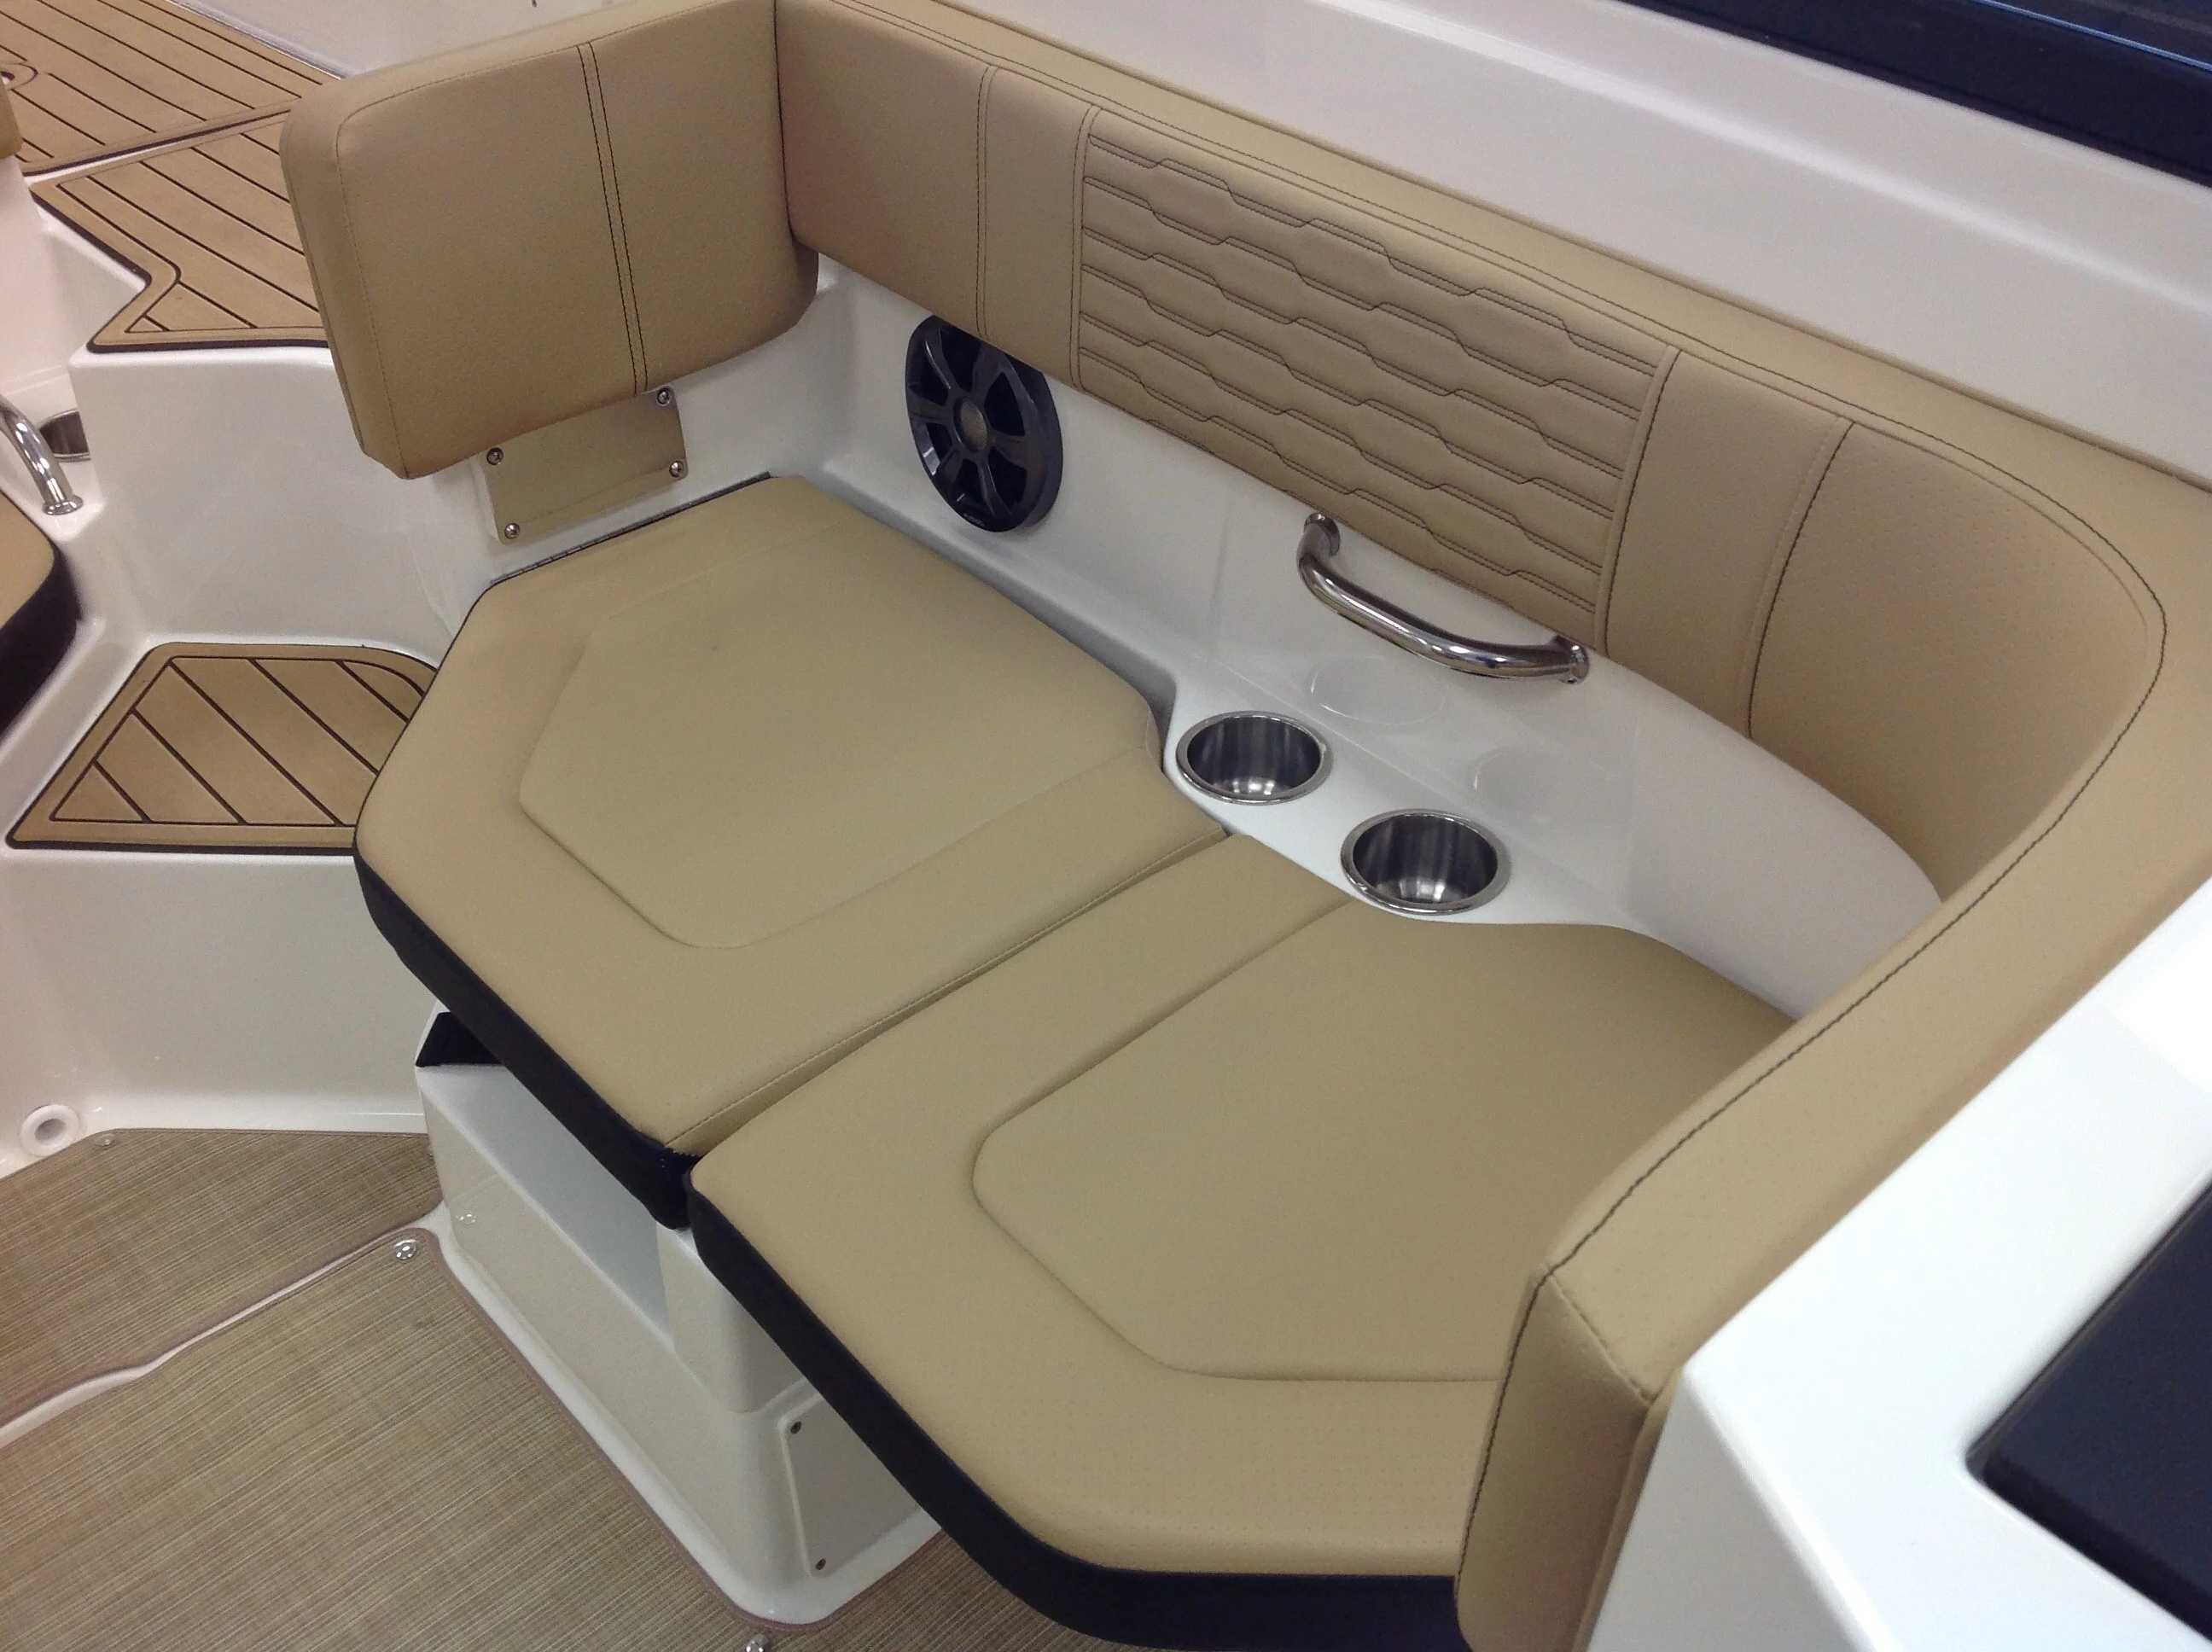 2021 Sea Ray boat for sale, model of the boat is 190 SPX & Image # 8 of 12